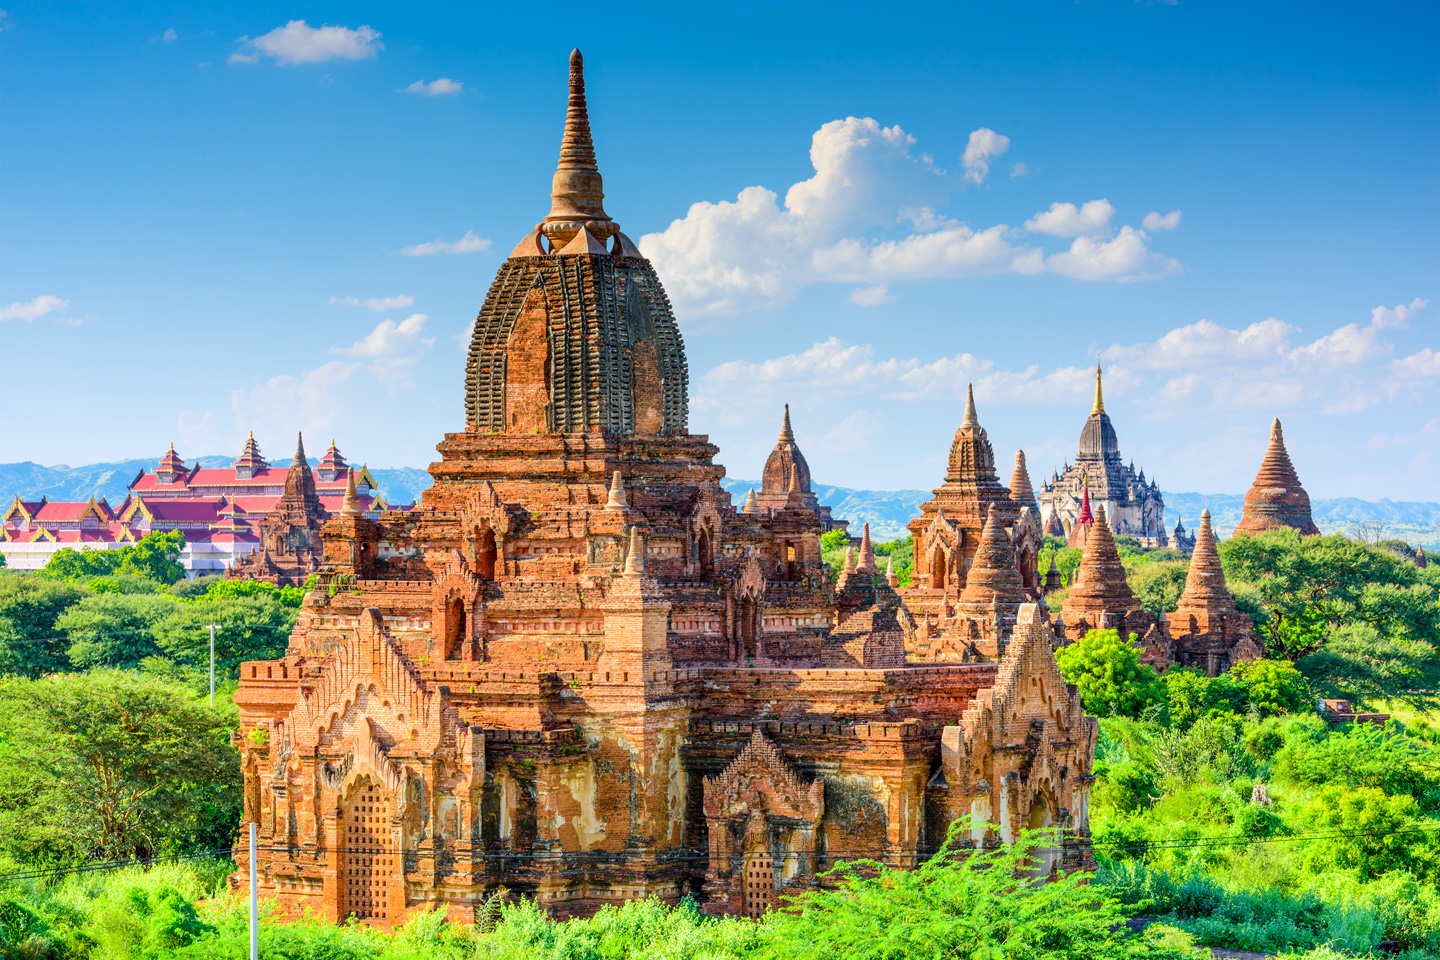 20 Stunning Photos That Will Make You Travel to Myanmar